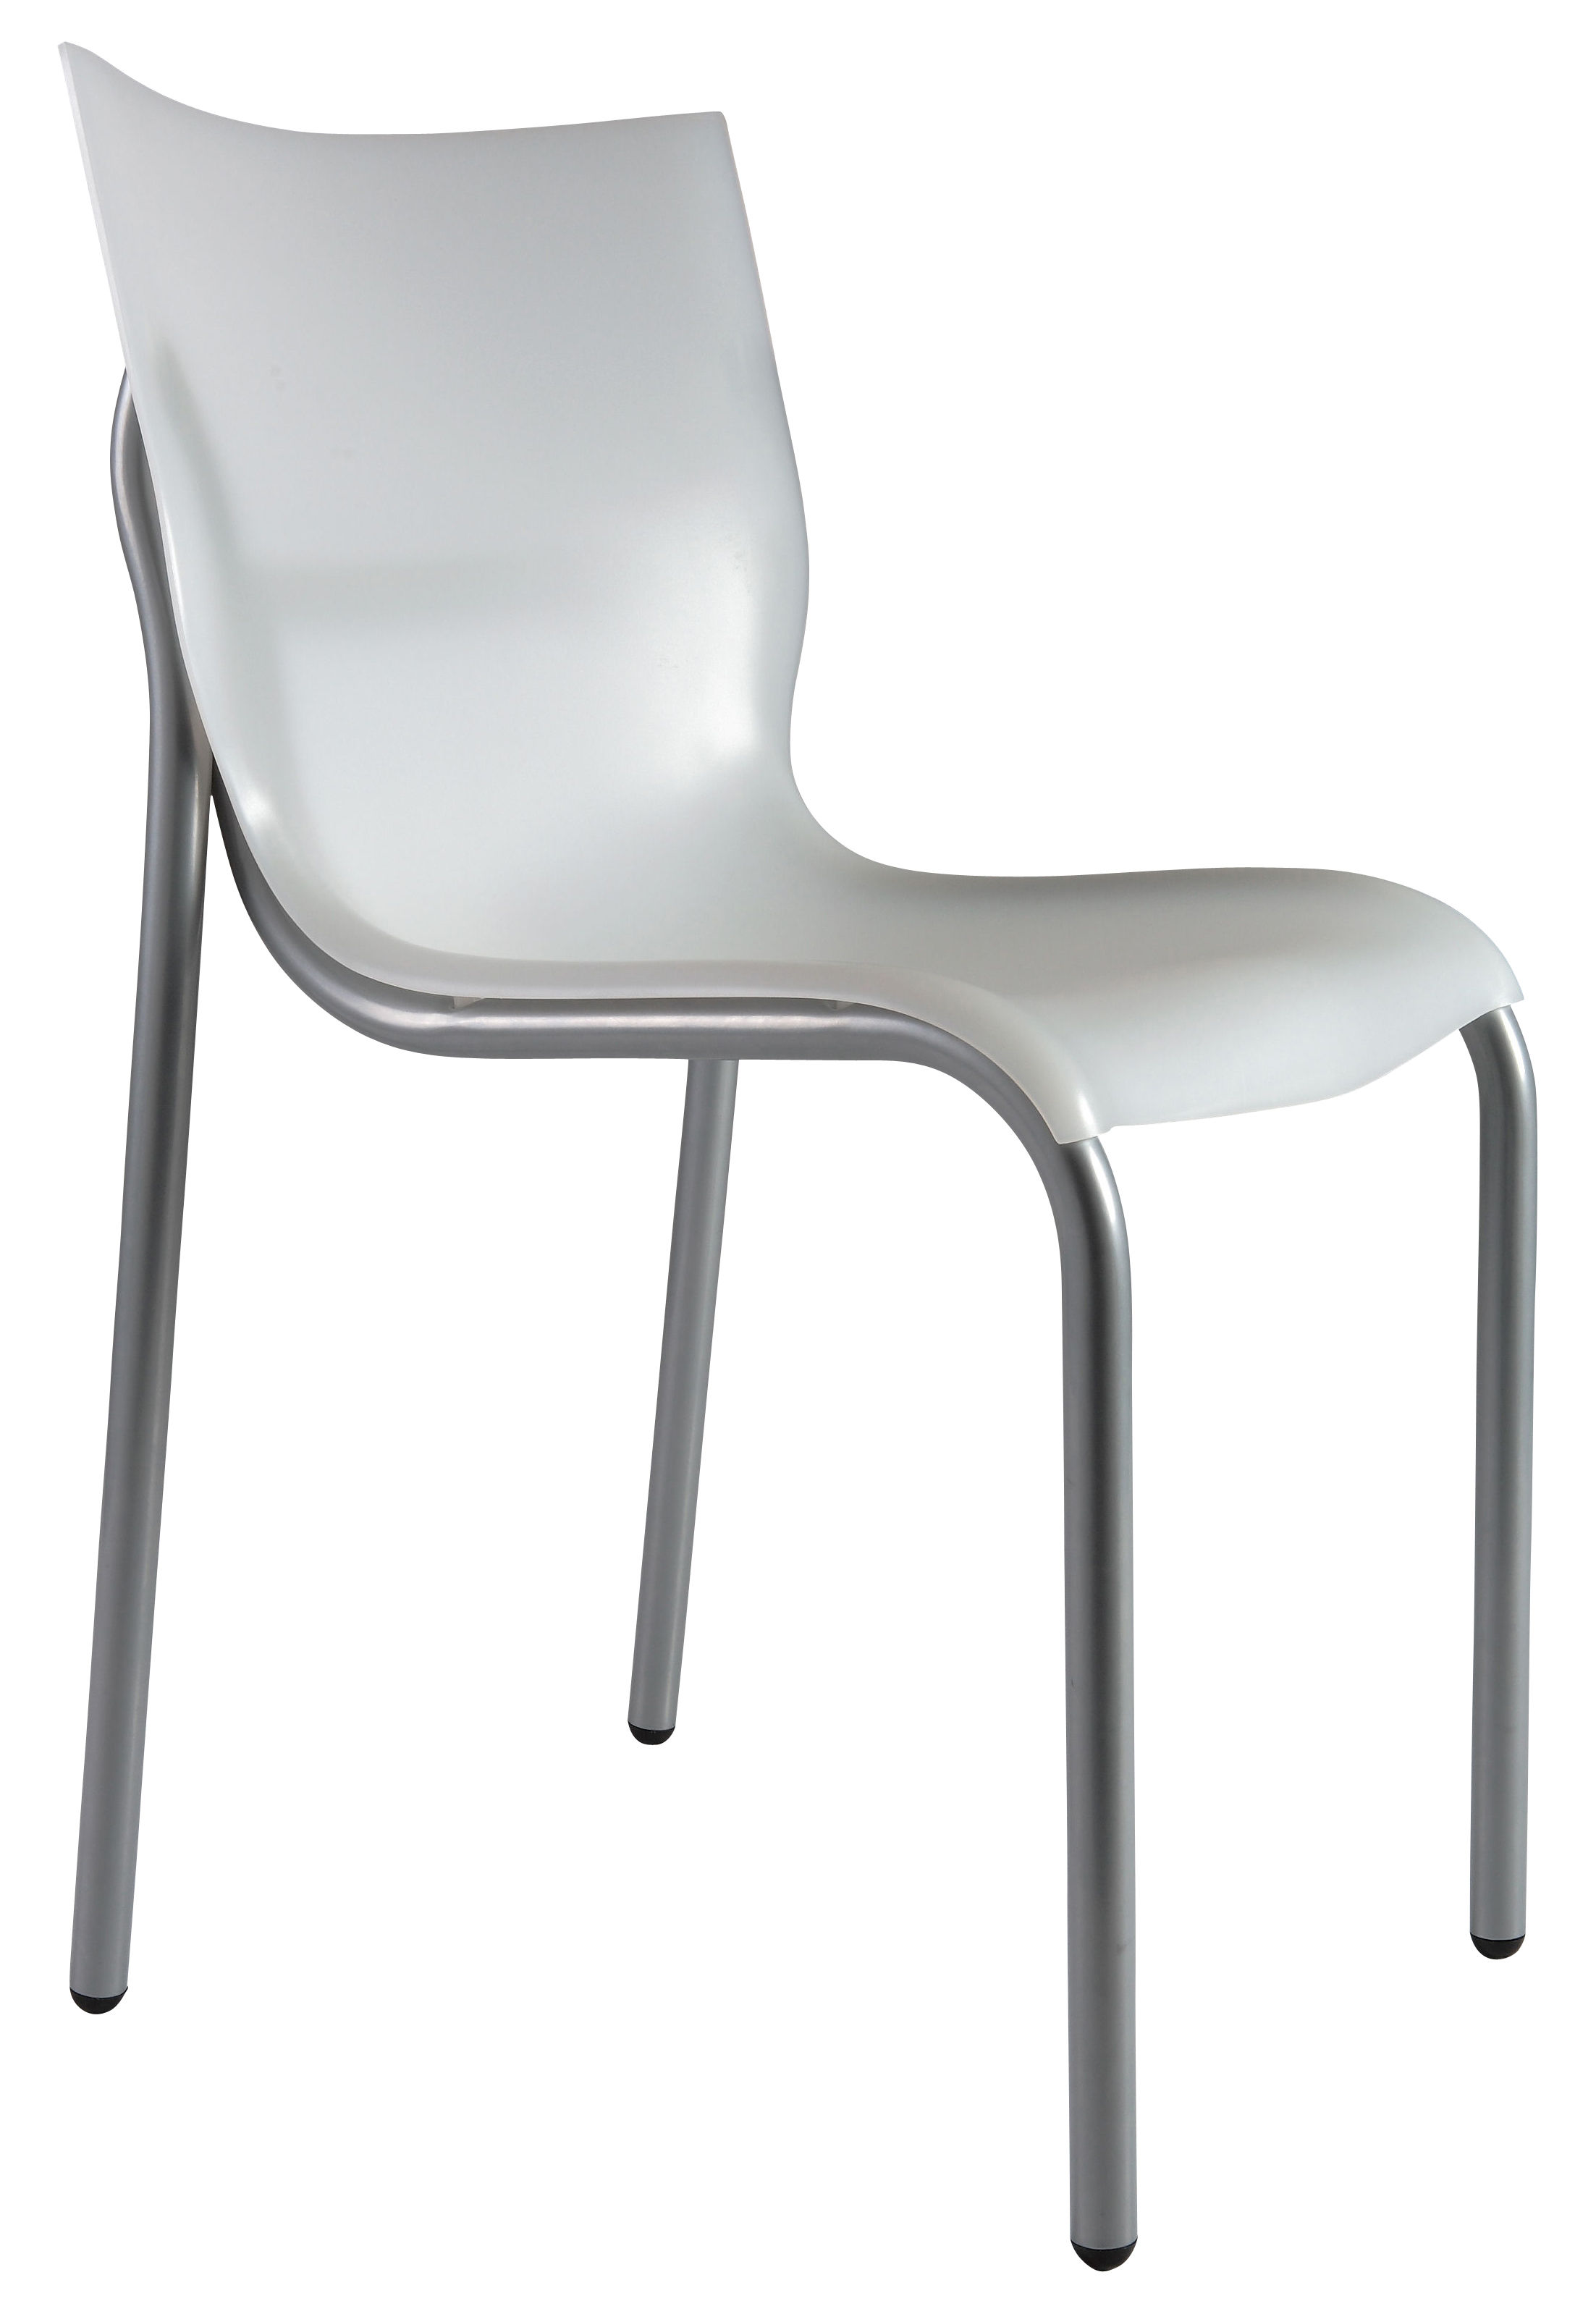 Chaise cheap chic translucide xo for Chaise translucide